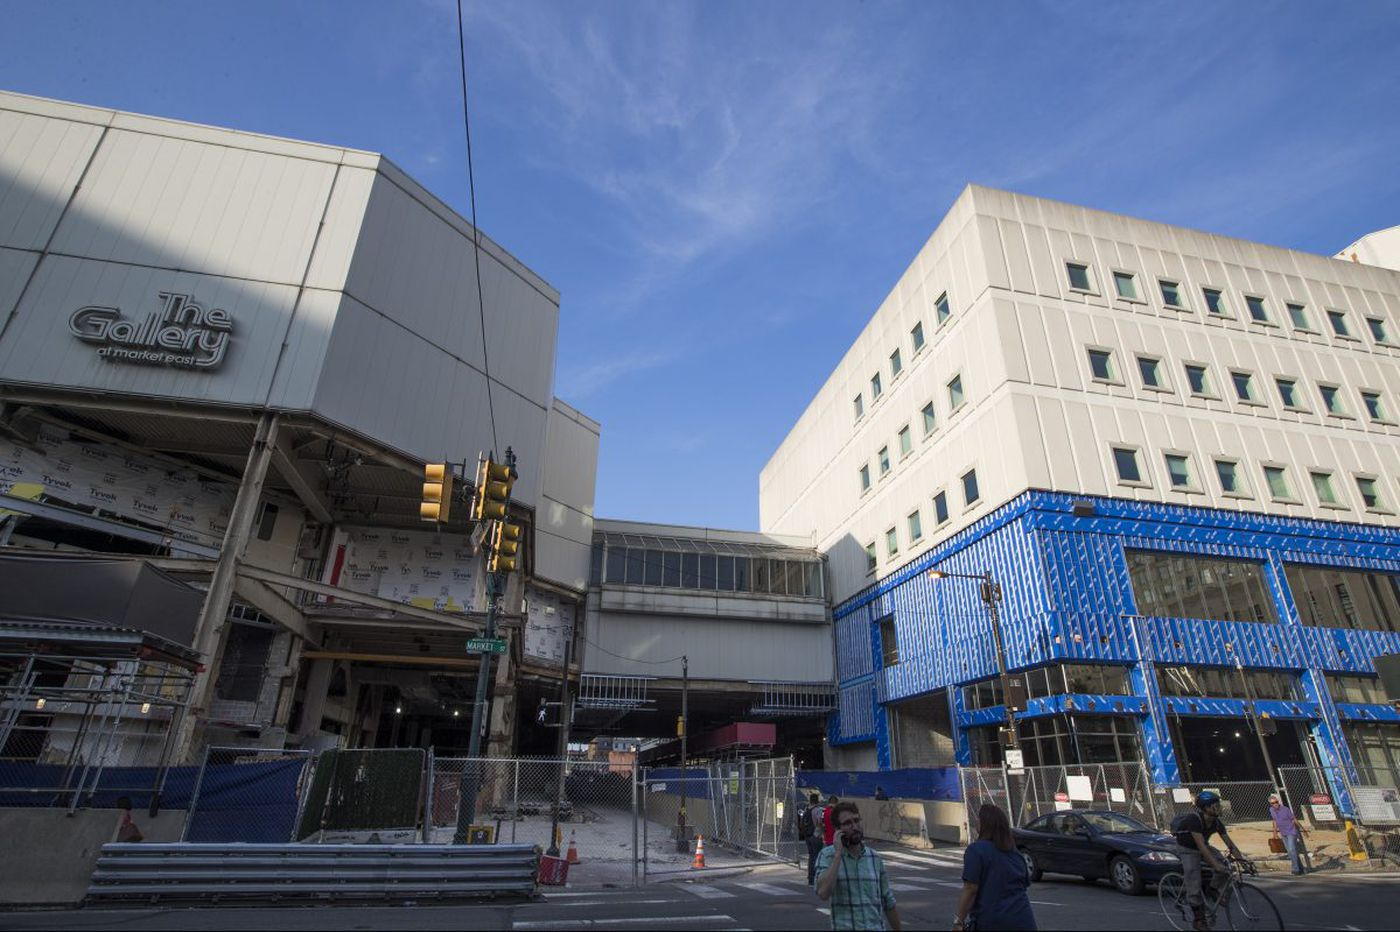 Fashion District Philadelphia's opening is delayed until November 2018, PREIT CEO says